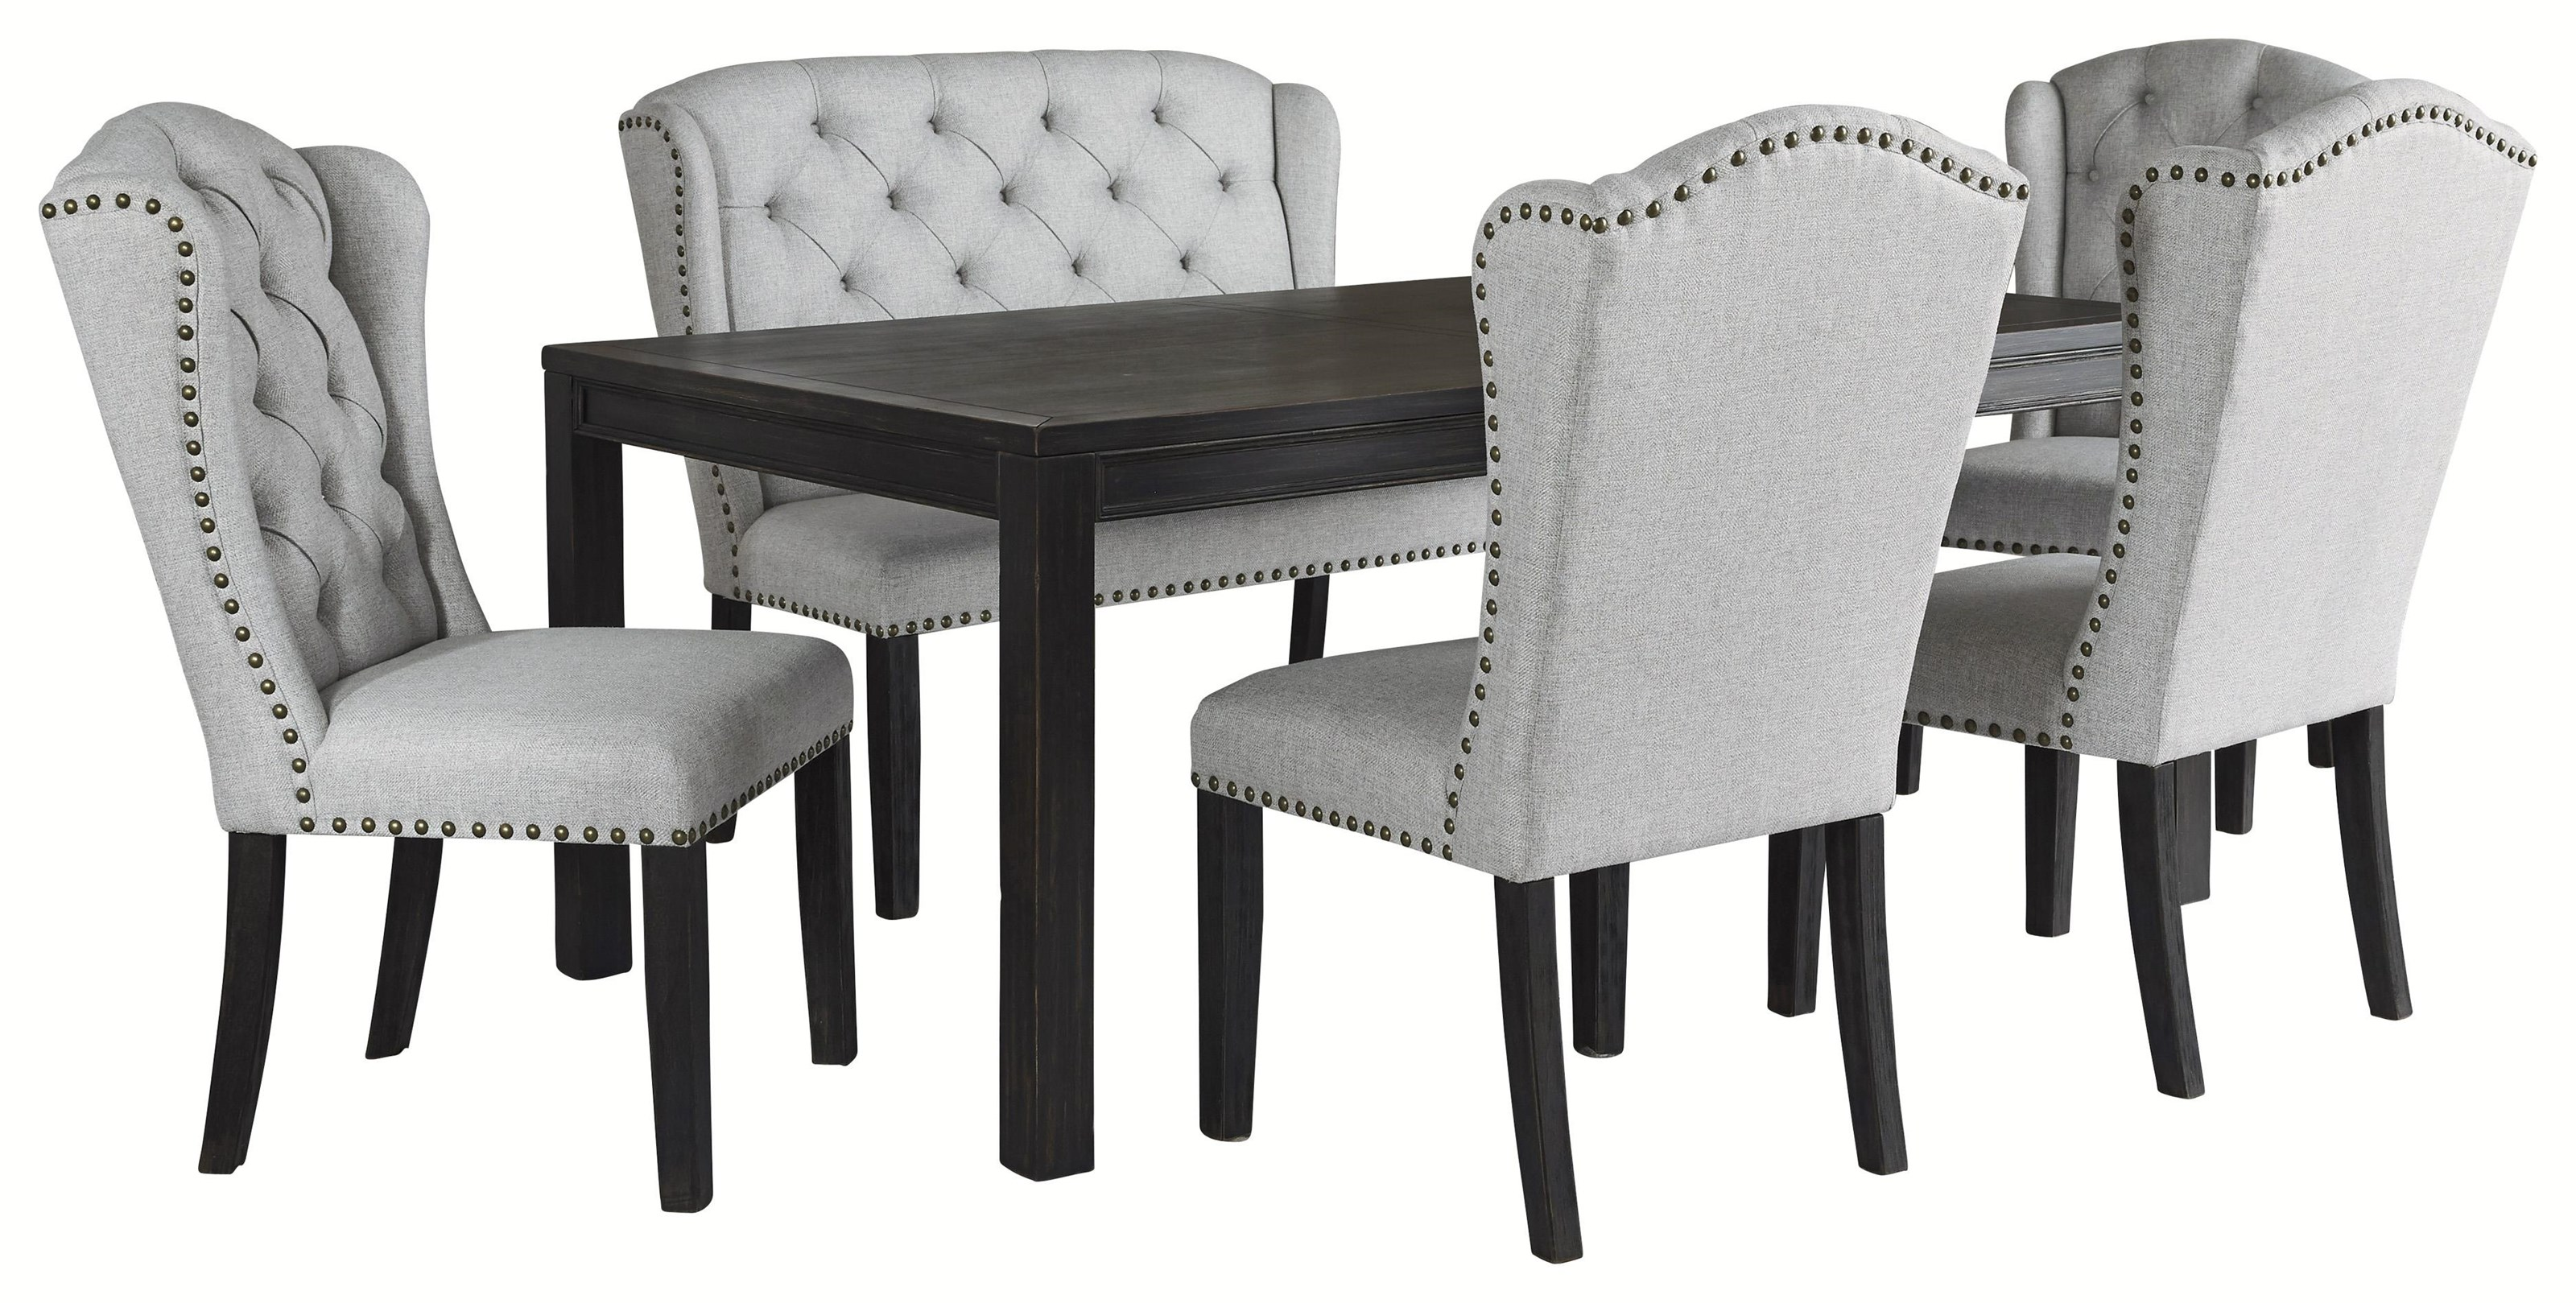 Ashley Furniture Jeanette D702 25 4x01 08 6 Piece Rectangular Dining Table 4 Upholstered Side Chairs And Upholstered Bench Sam Levitz Furniture Table Chair Set With Bench